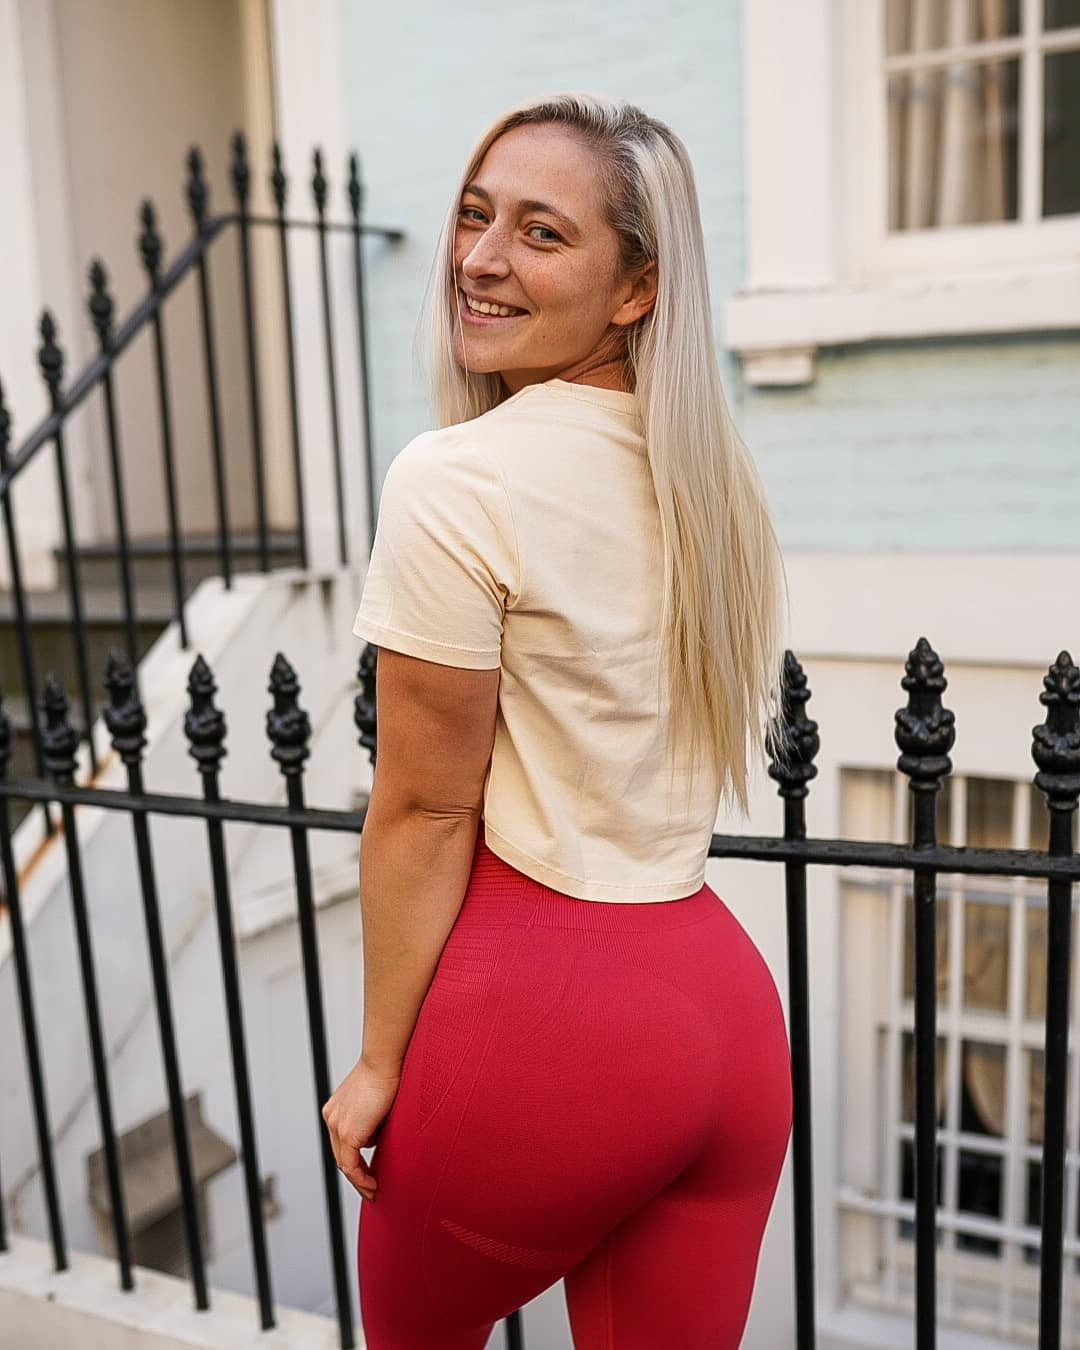 Maddy-Gayton-Wallpapers-Insta-Fit-Bio-2